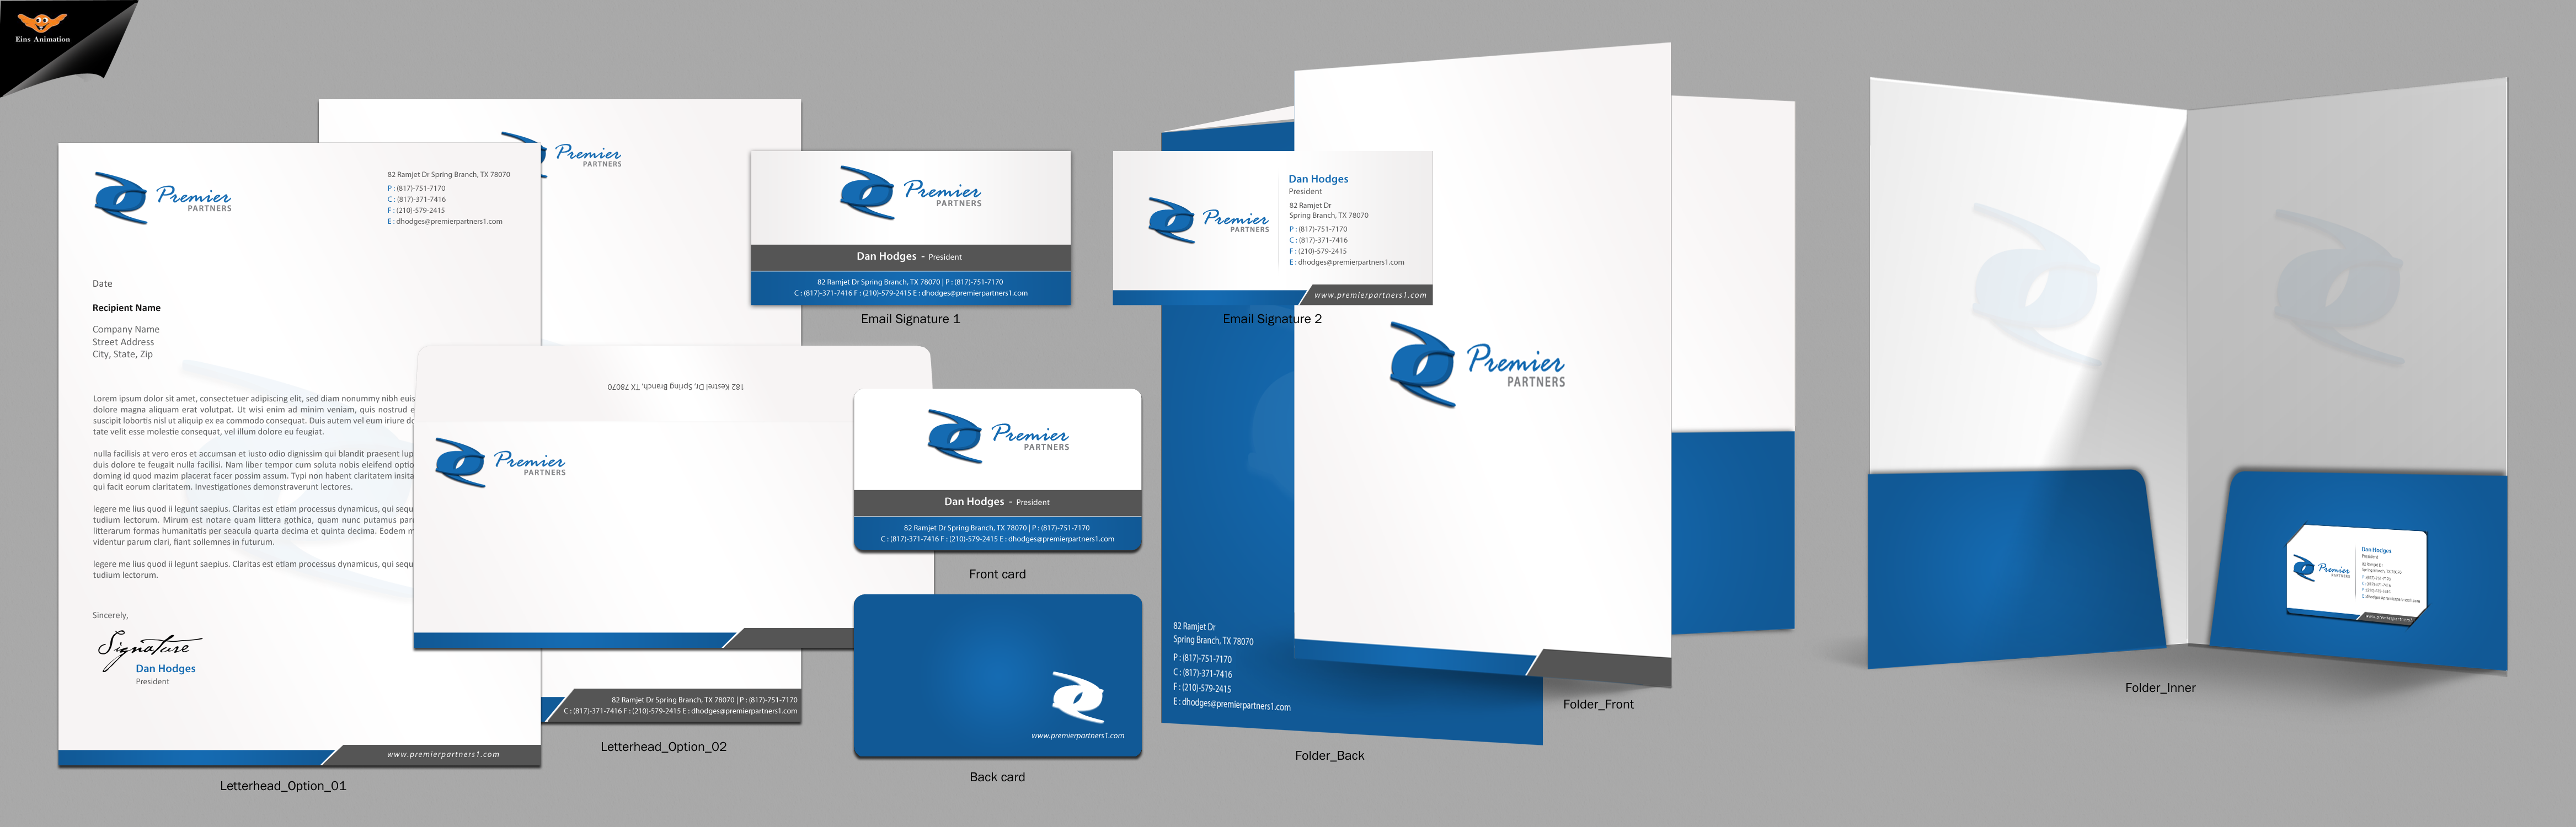 Stationary For Premier Partners - Consulting